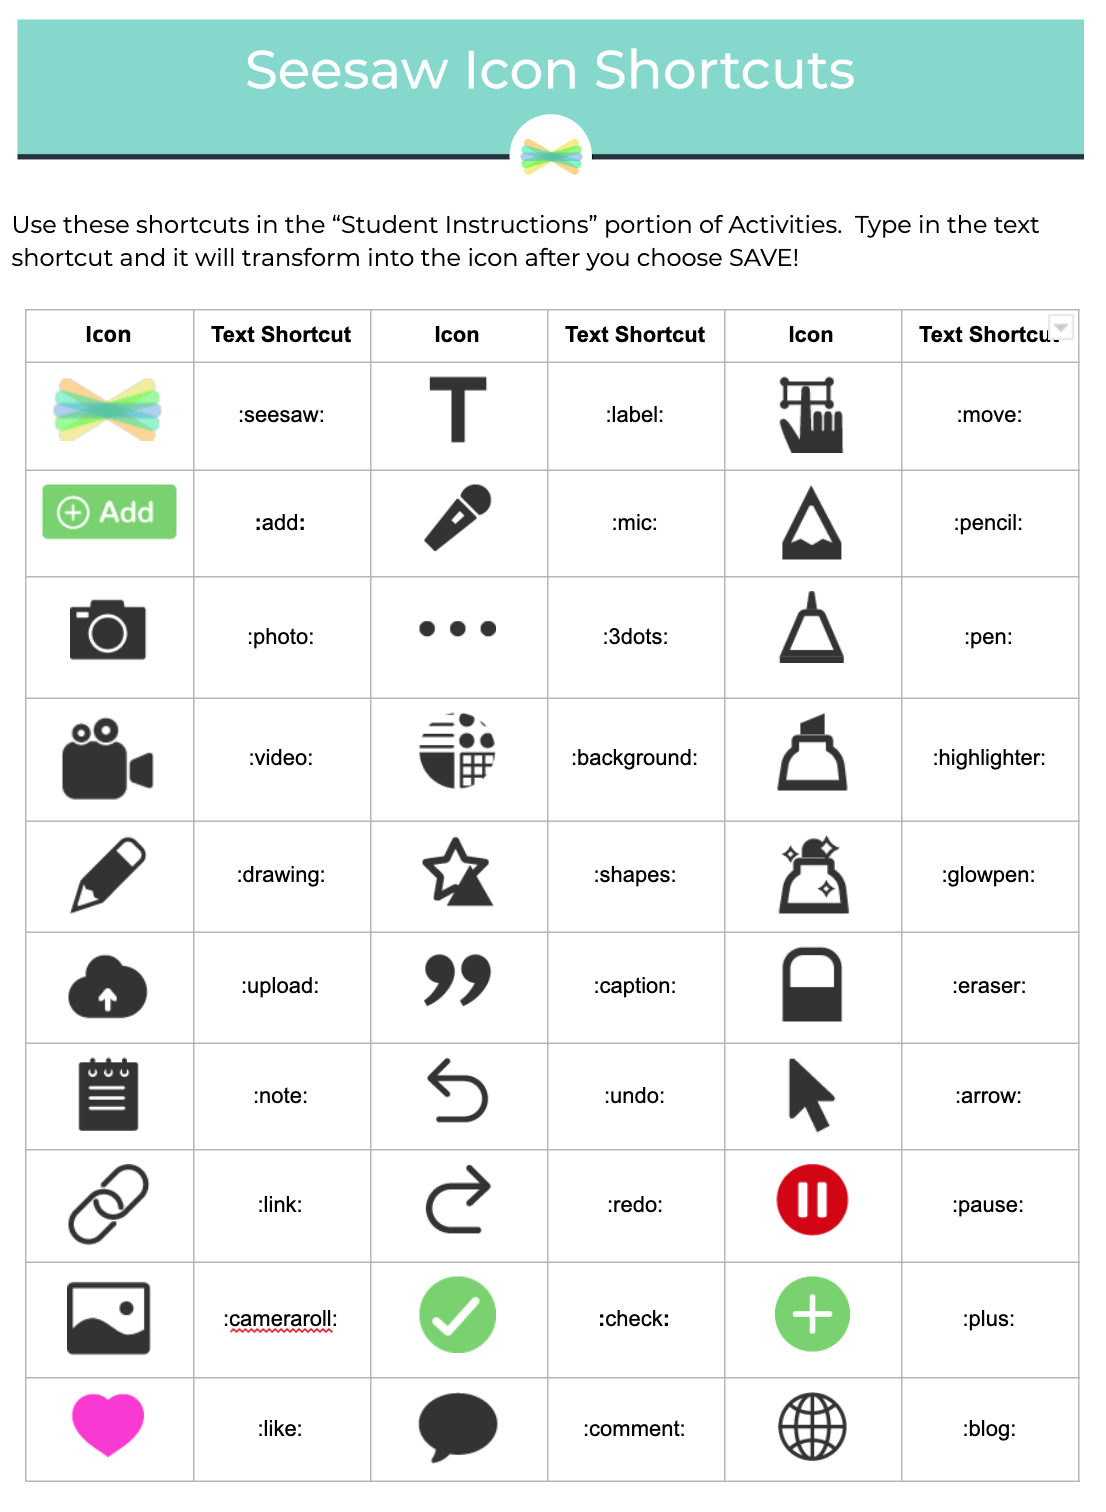 Seesaw Icon Shortcuts for Activities Seesaw, Shortcut